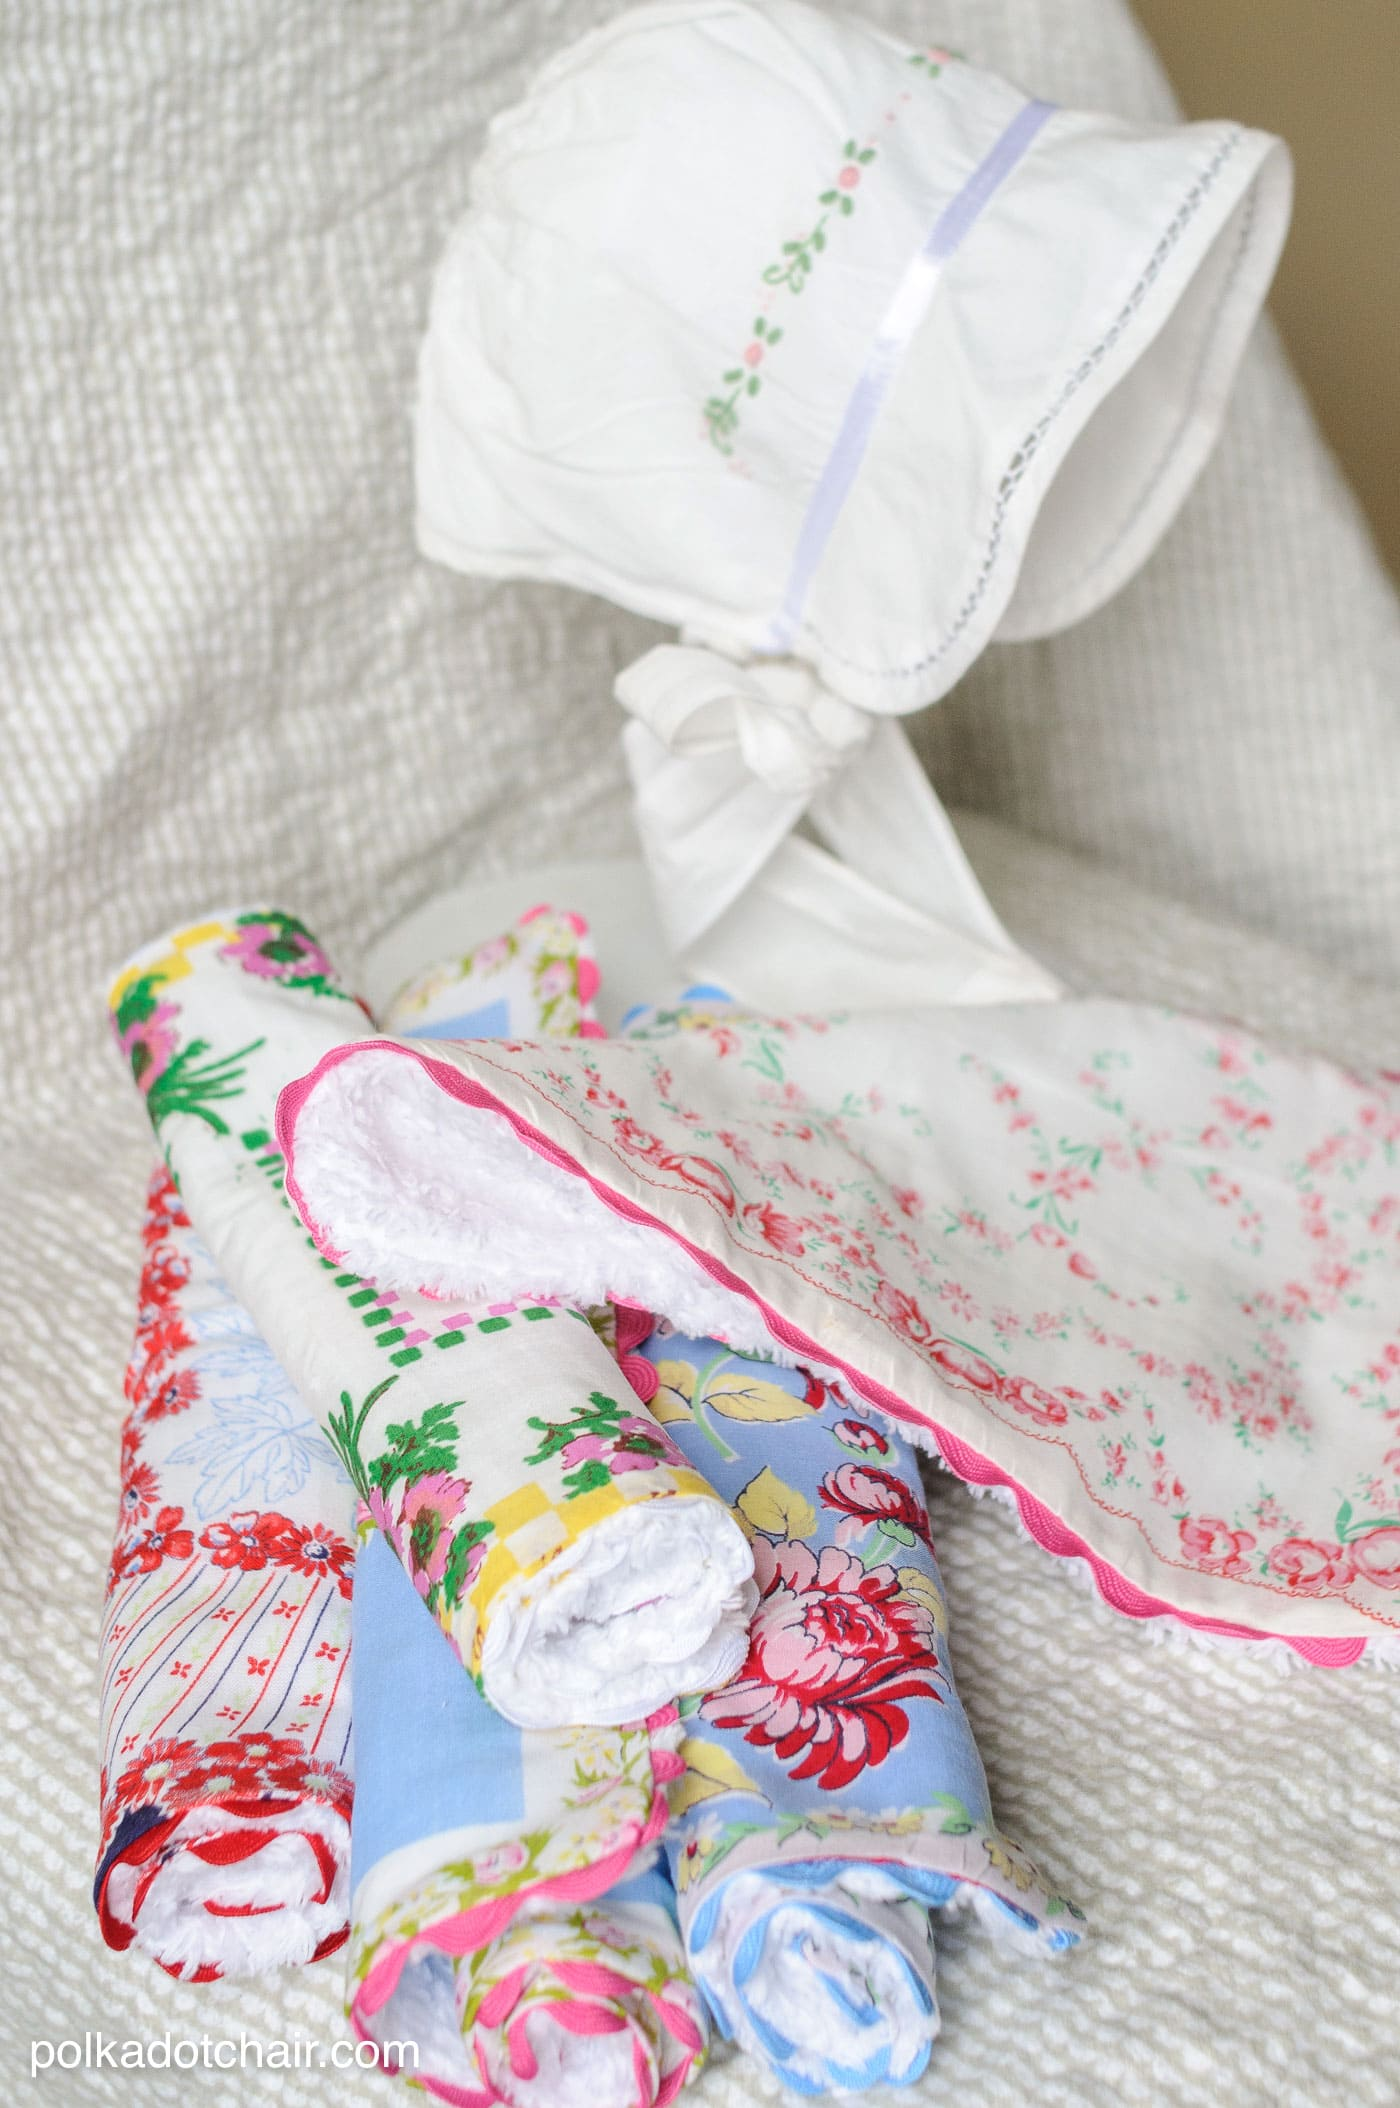 Tutorial for Baby Burp Cloths made from Vintage Handkerchiefs